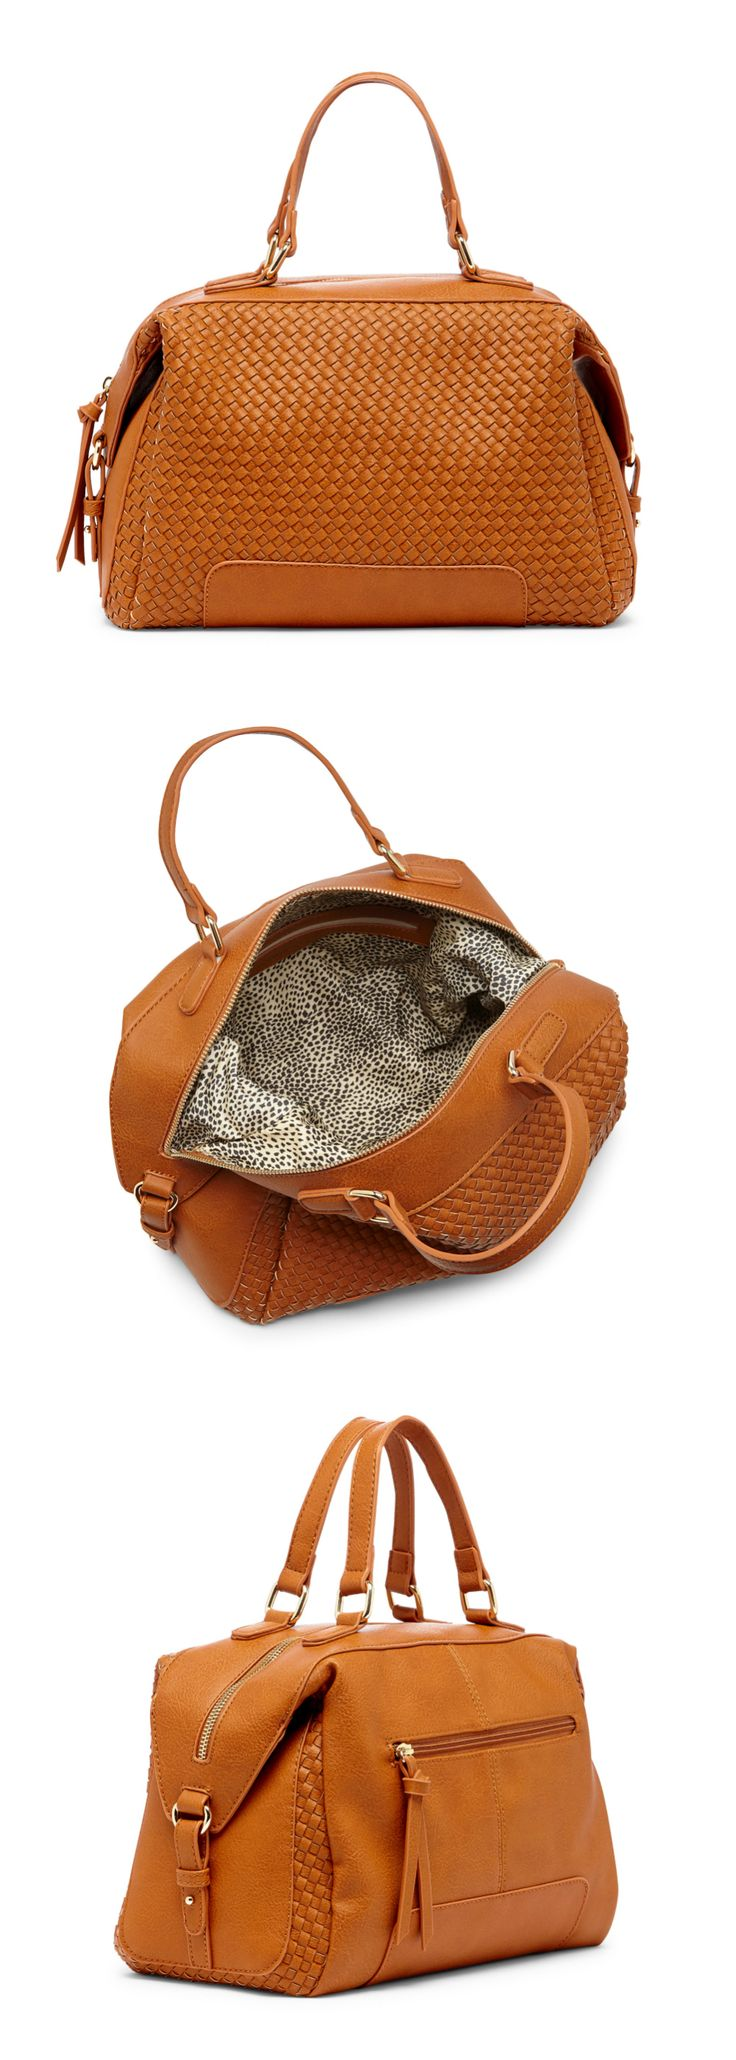 Cognac woven satchel with a removable shoulder strap | Sole Society Paxley